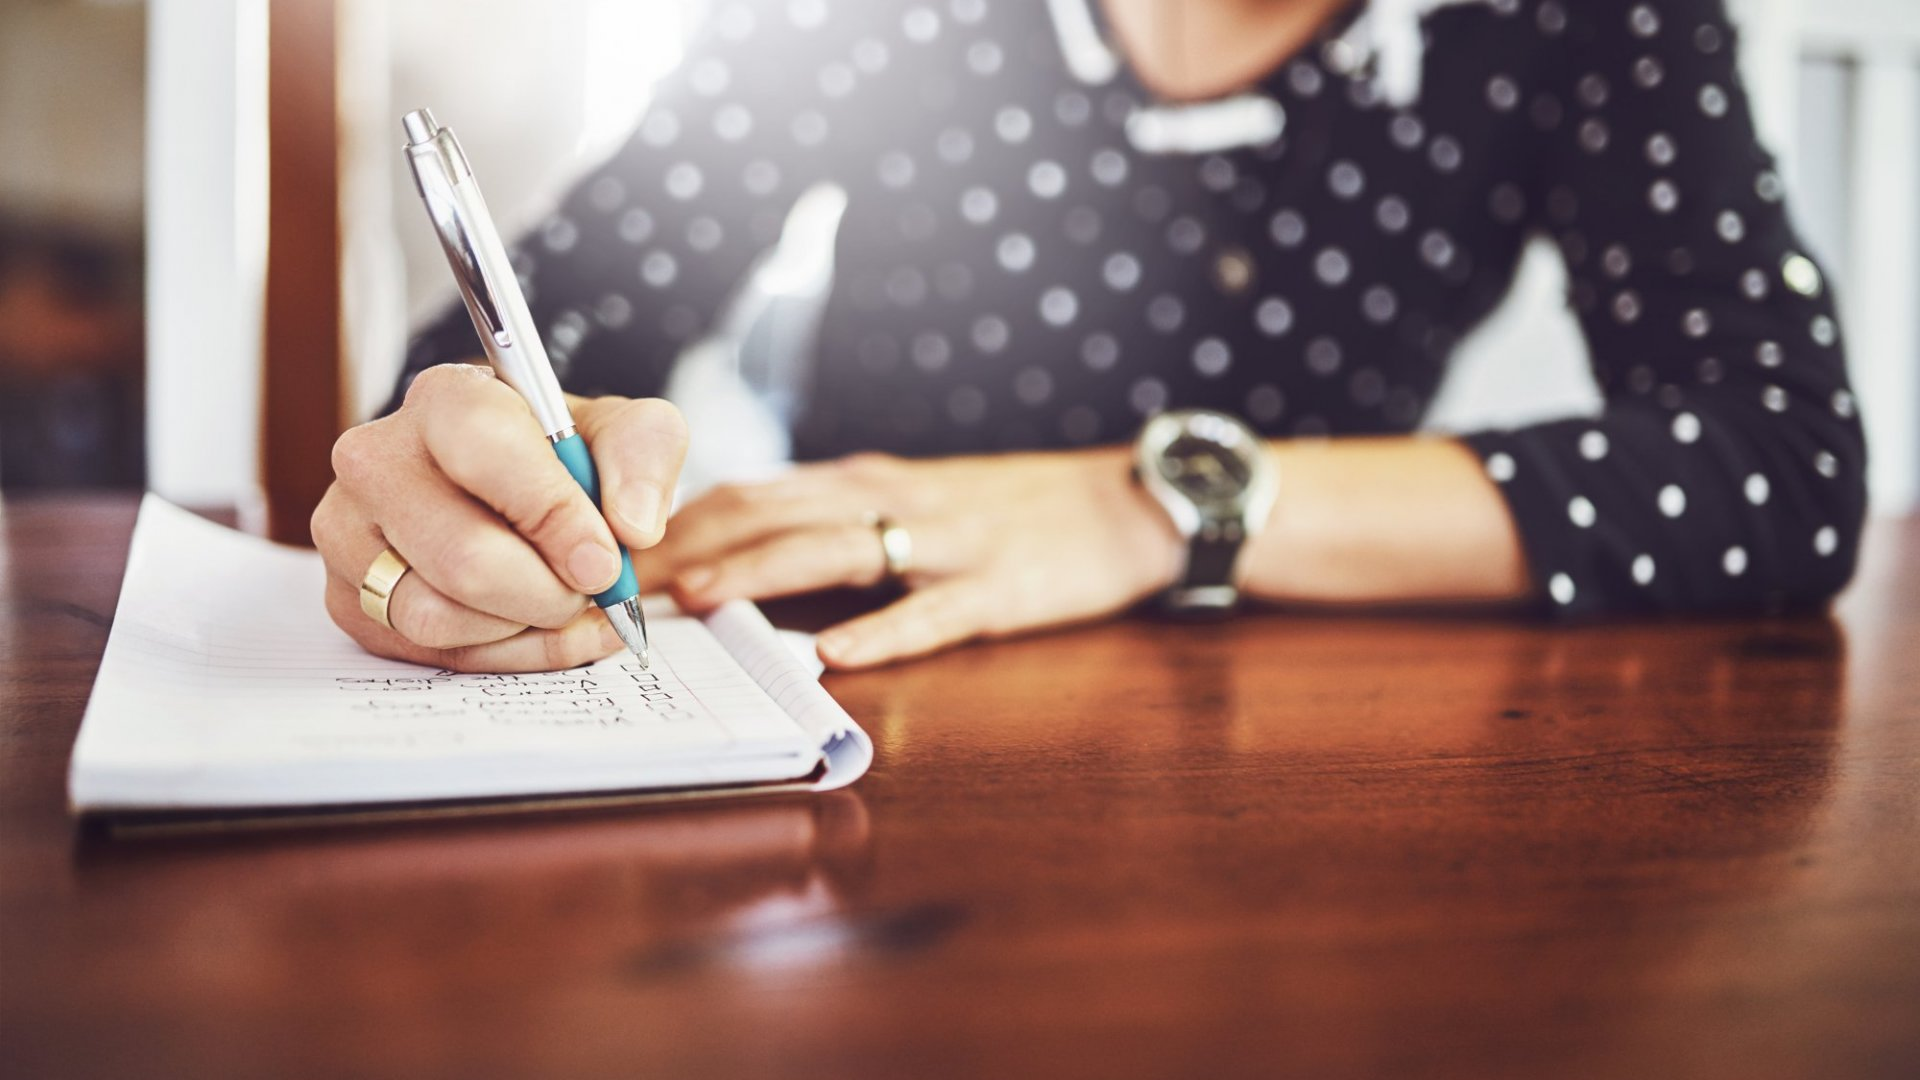 How to Cut Your To-Do List in Half While Creating More Value for Your Business